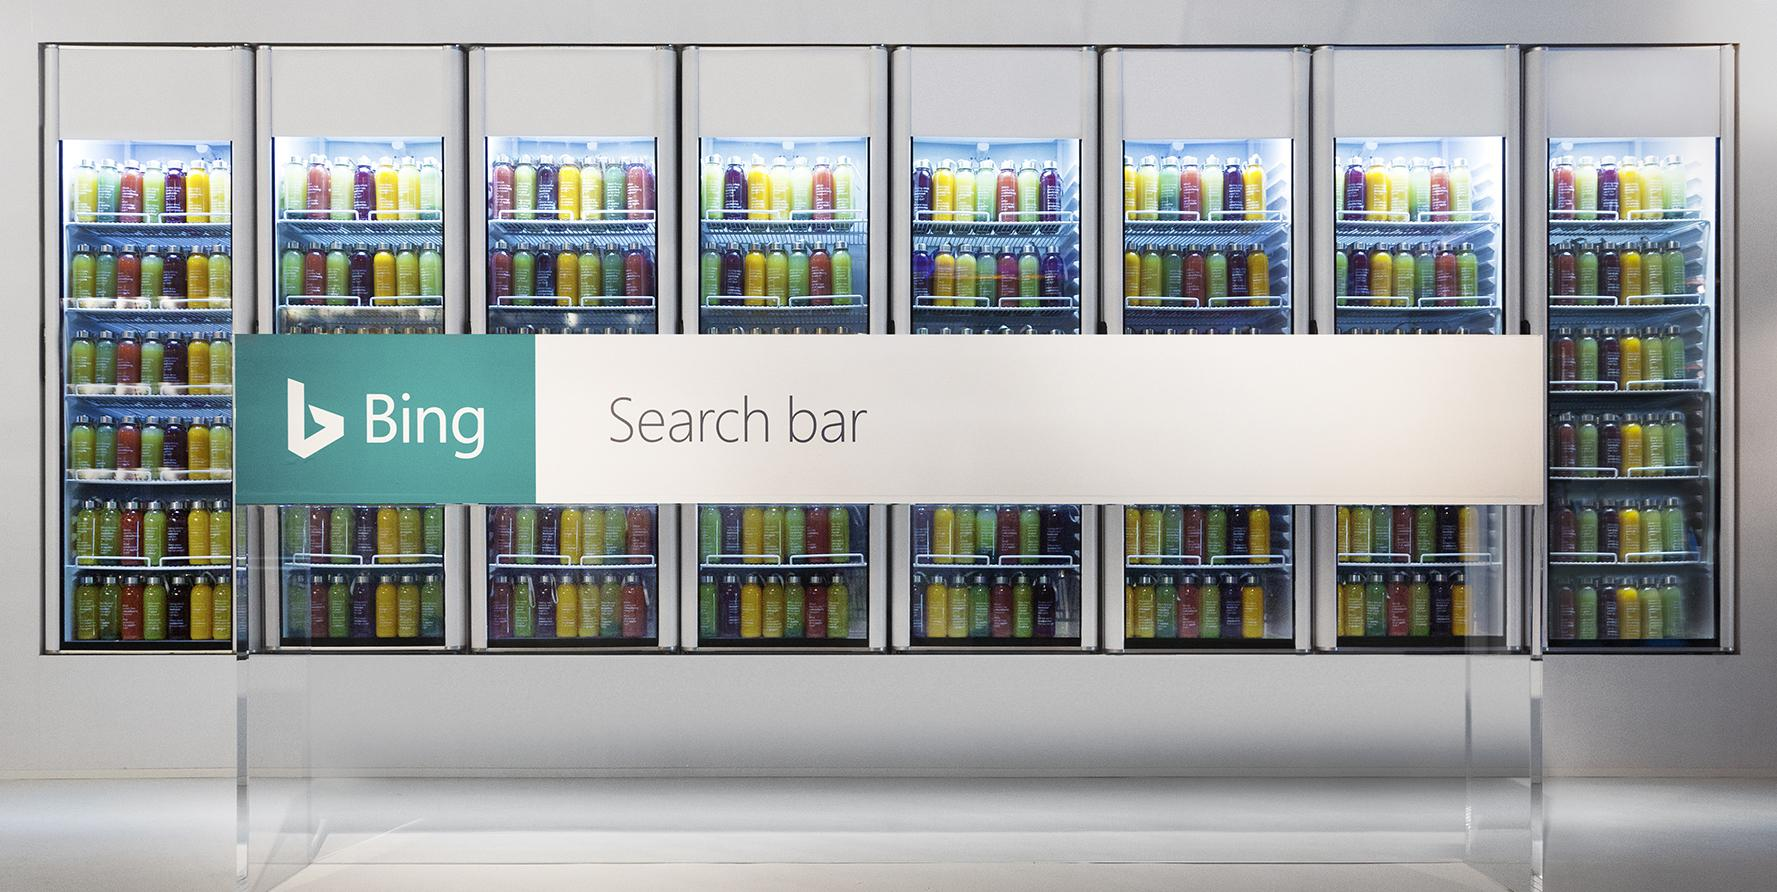 Bing Experiential Ad - Bing Search Bar